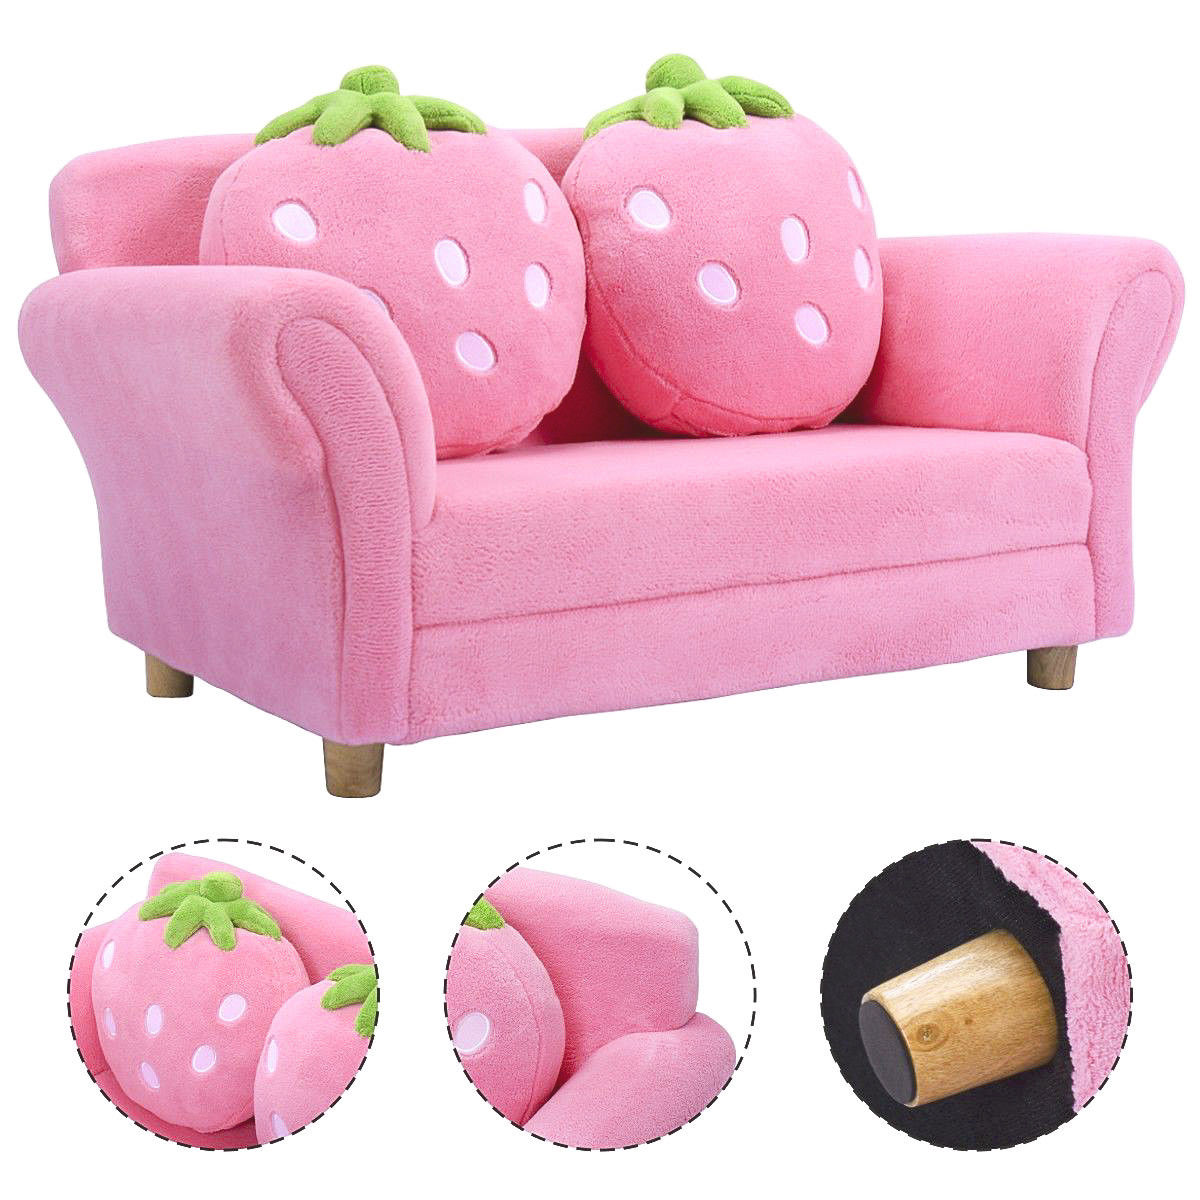 Costway Kids Sofa Strawberry Armrest Chair Lounge Couch w/2 Pillow ...